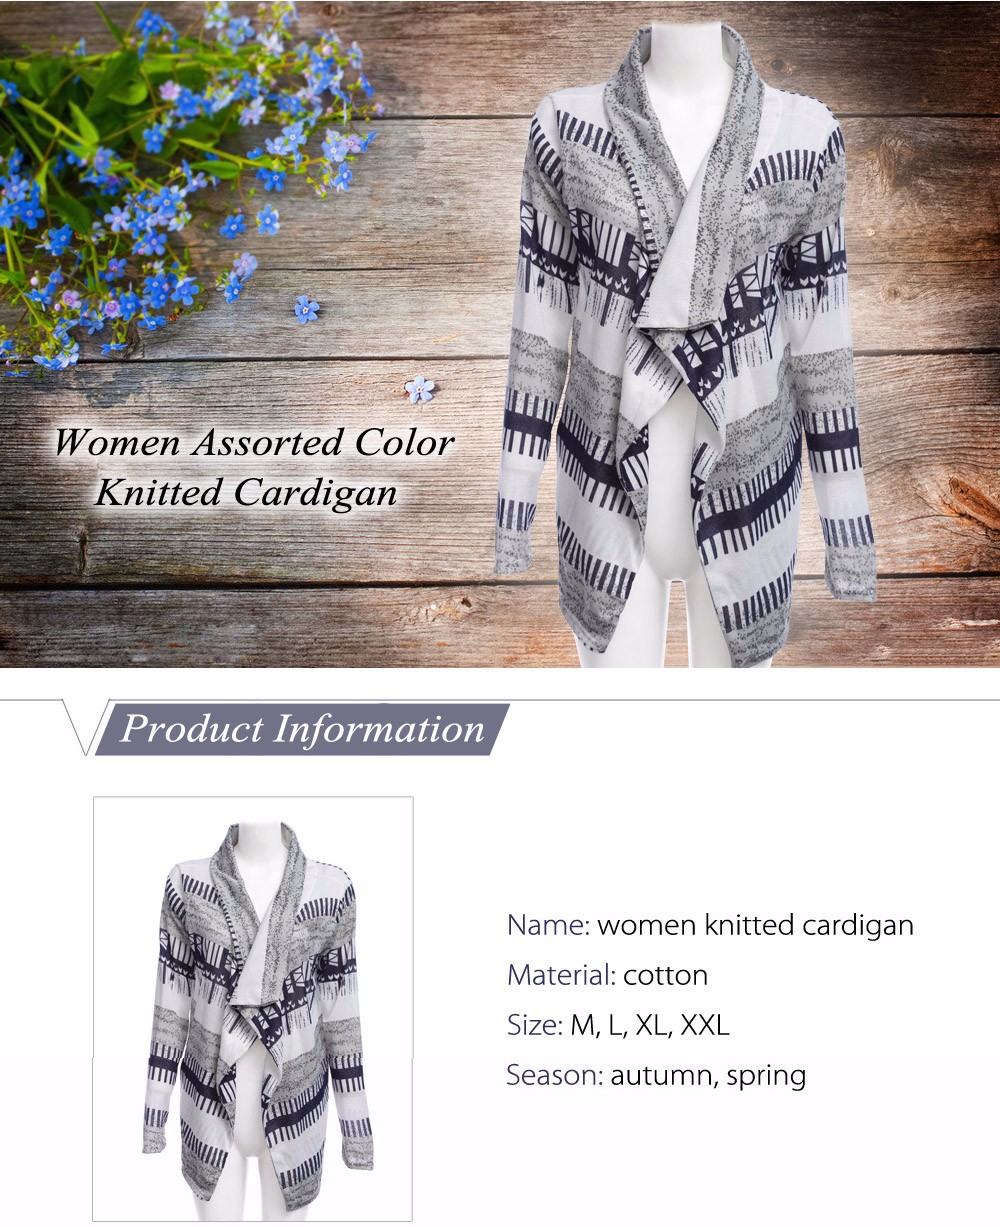 Women Assorted Color Knitted Cardigan